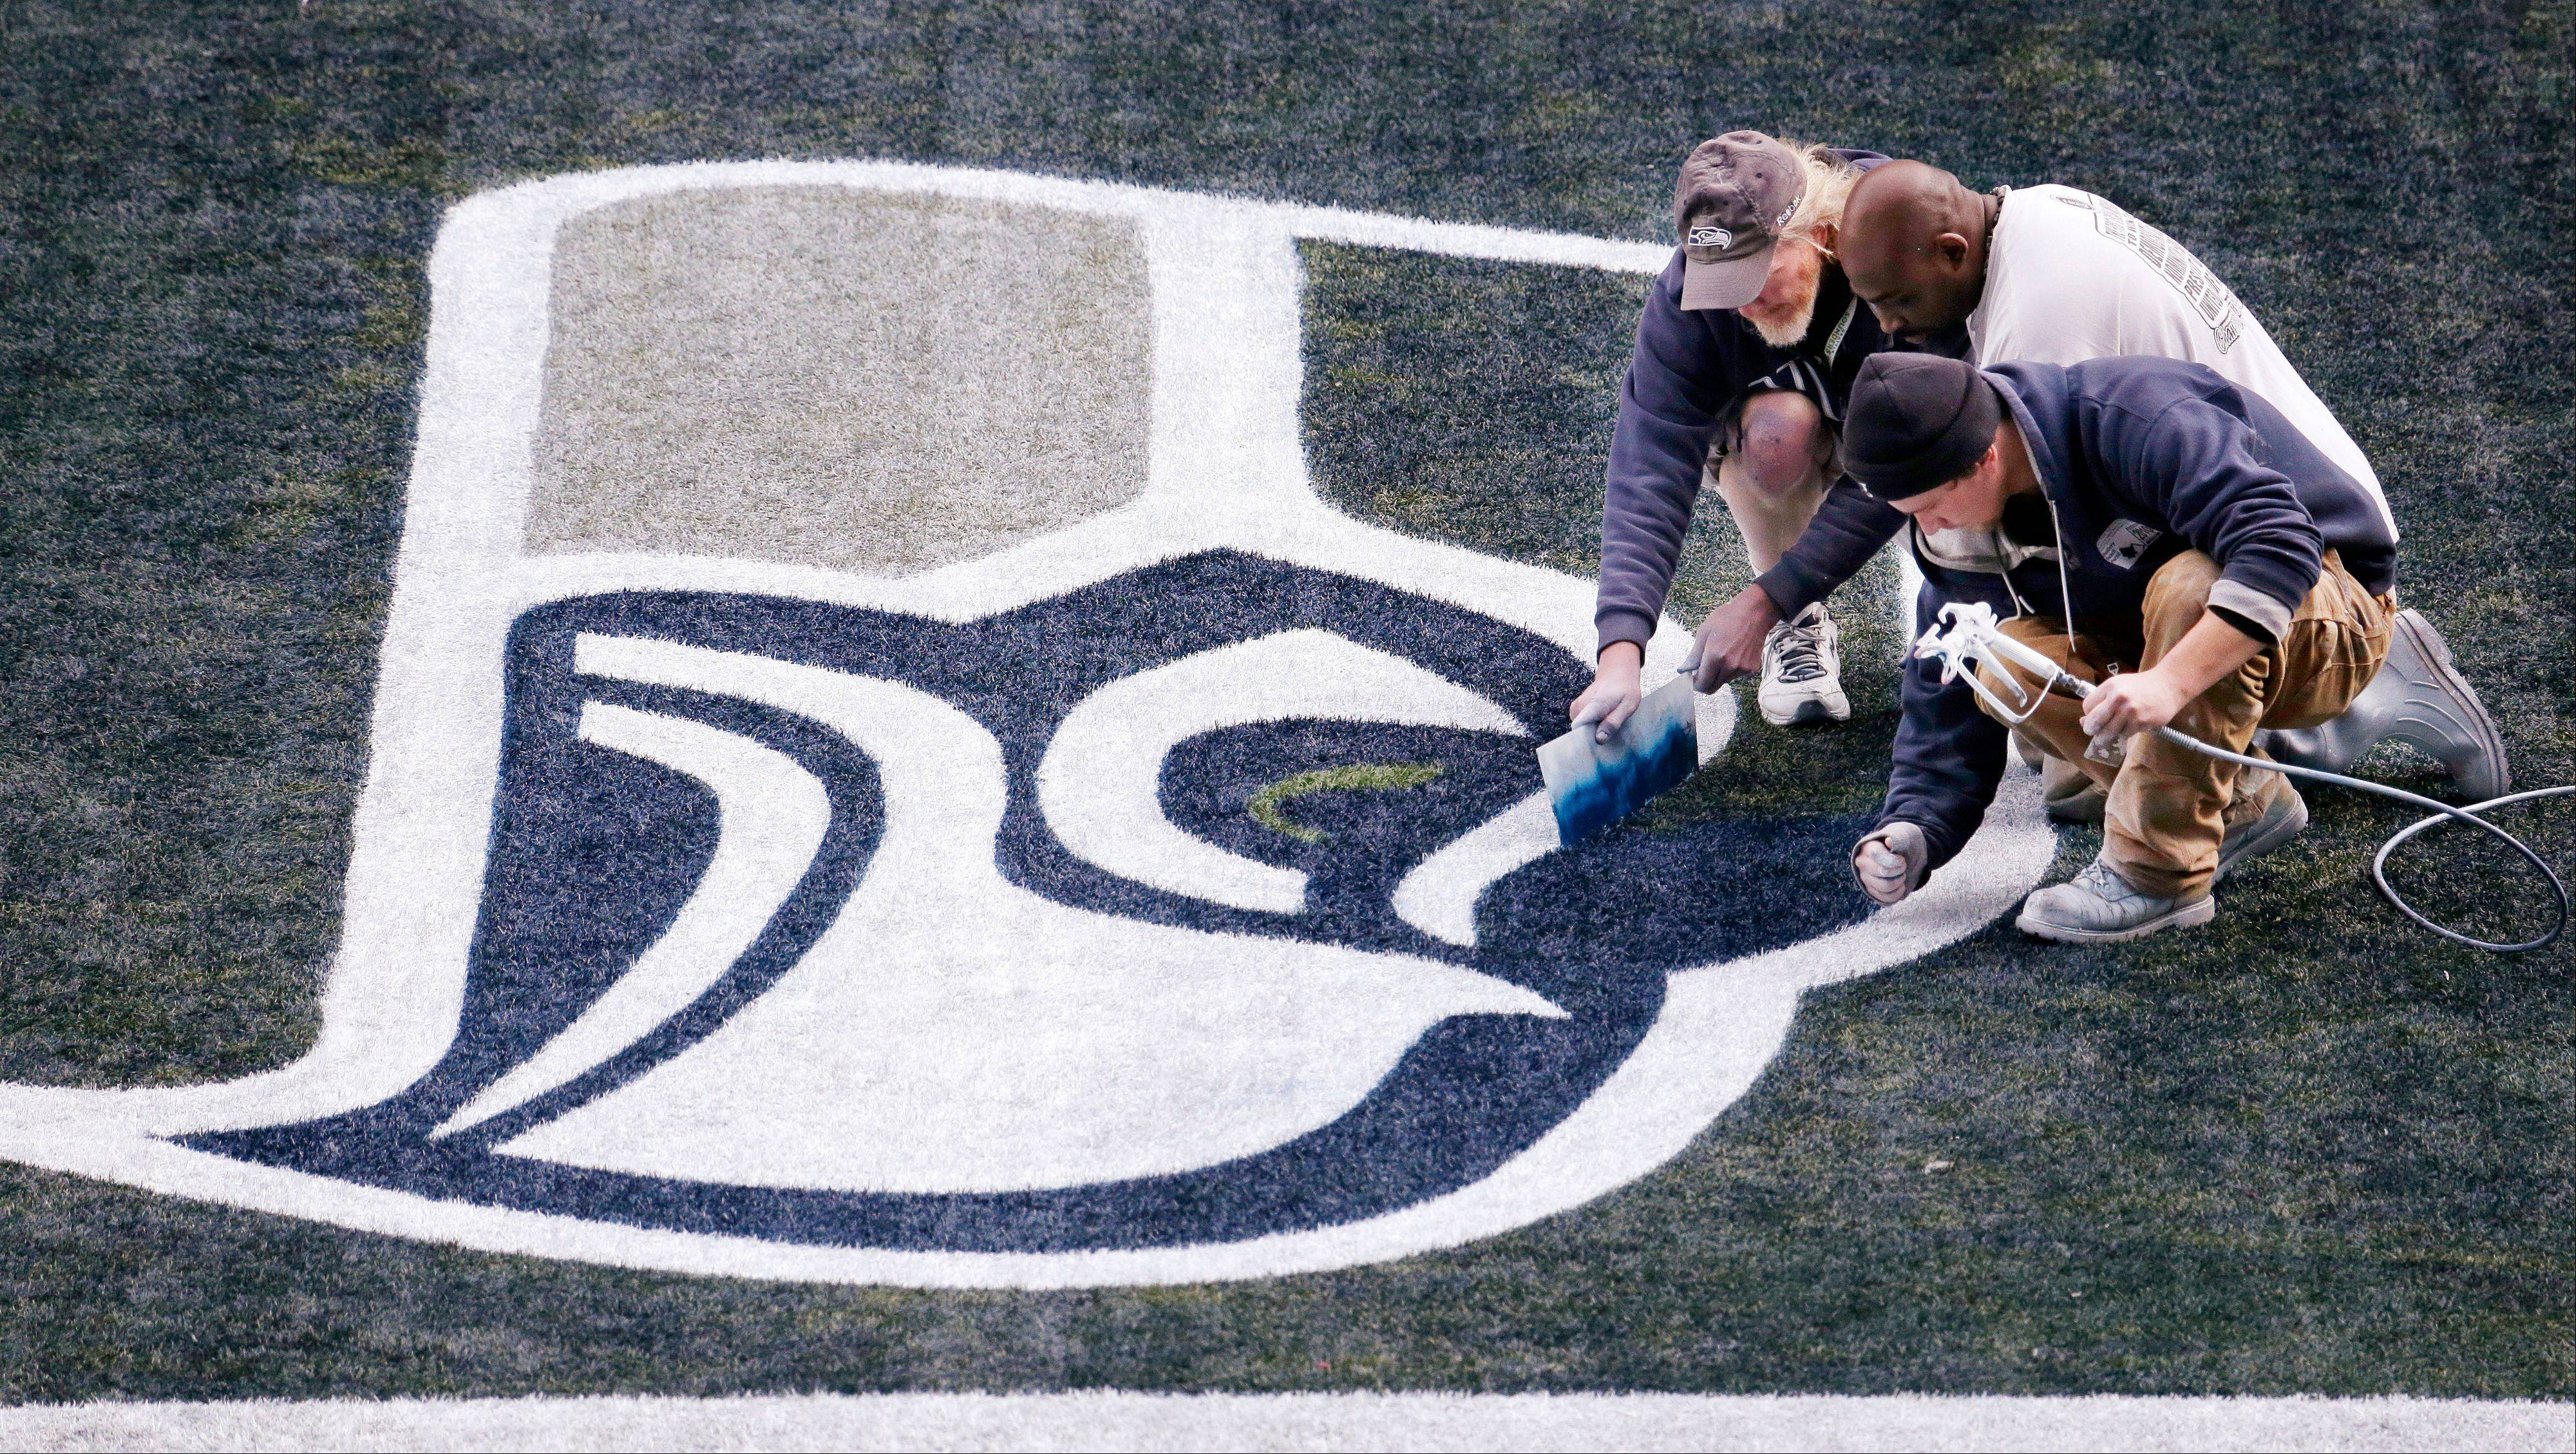 Painters put the finishing touches on a Seattle Seahawks' logo on the turf at CenturyLink Field in preparation for the NFL football NFC championship game in Seattle, Wednesday, Jan. 15, 2014. The Seahawks play the San Francisco 49ers on Sunday. (AP Photo/Elaine Thompson)